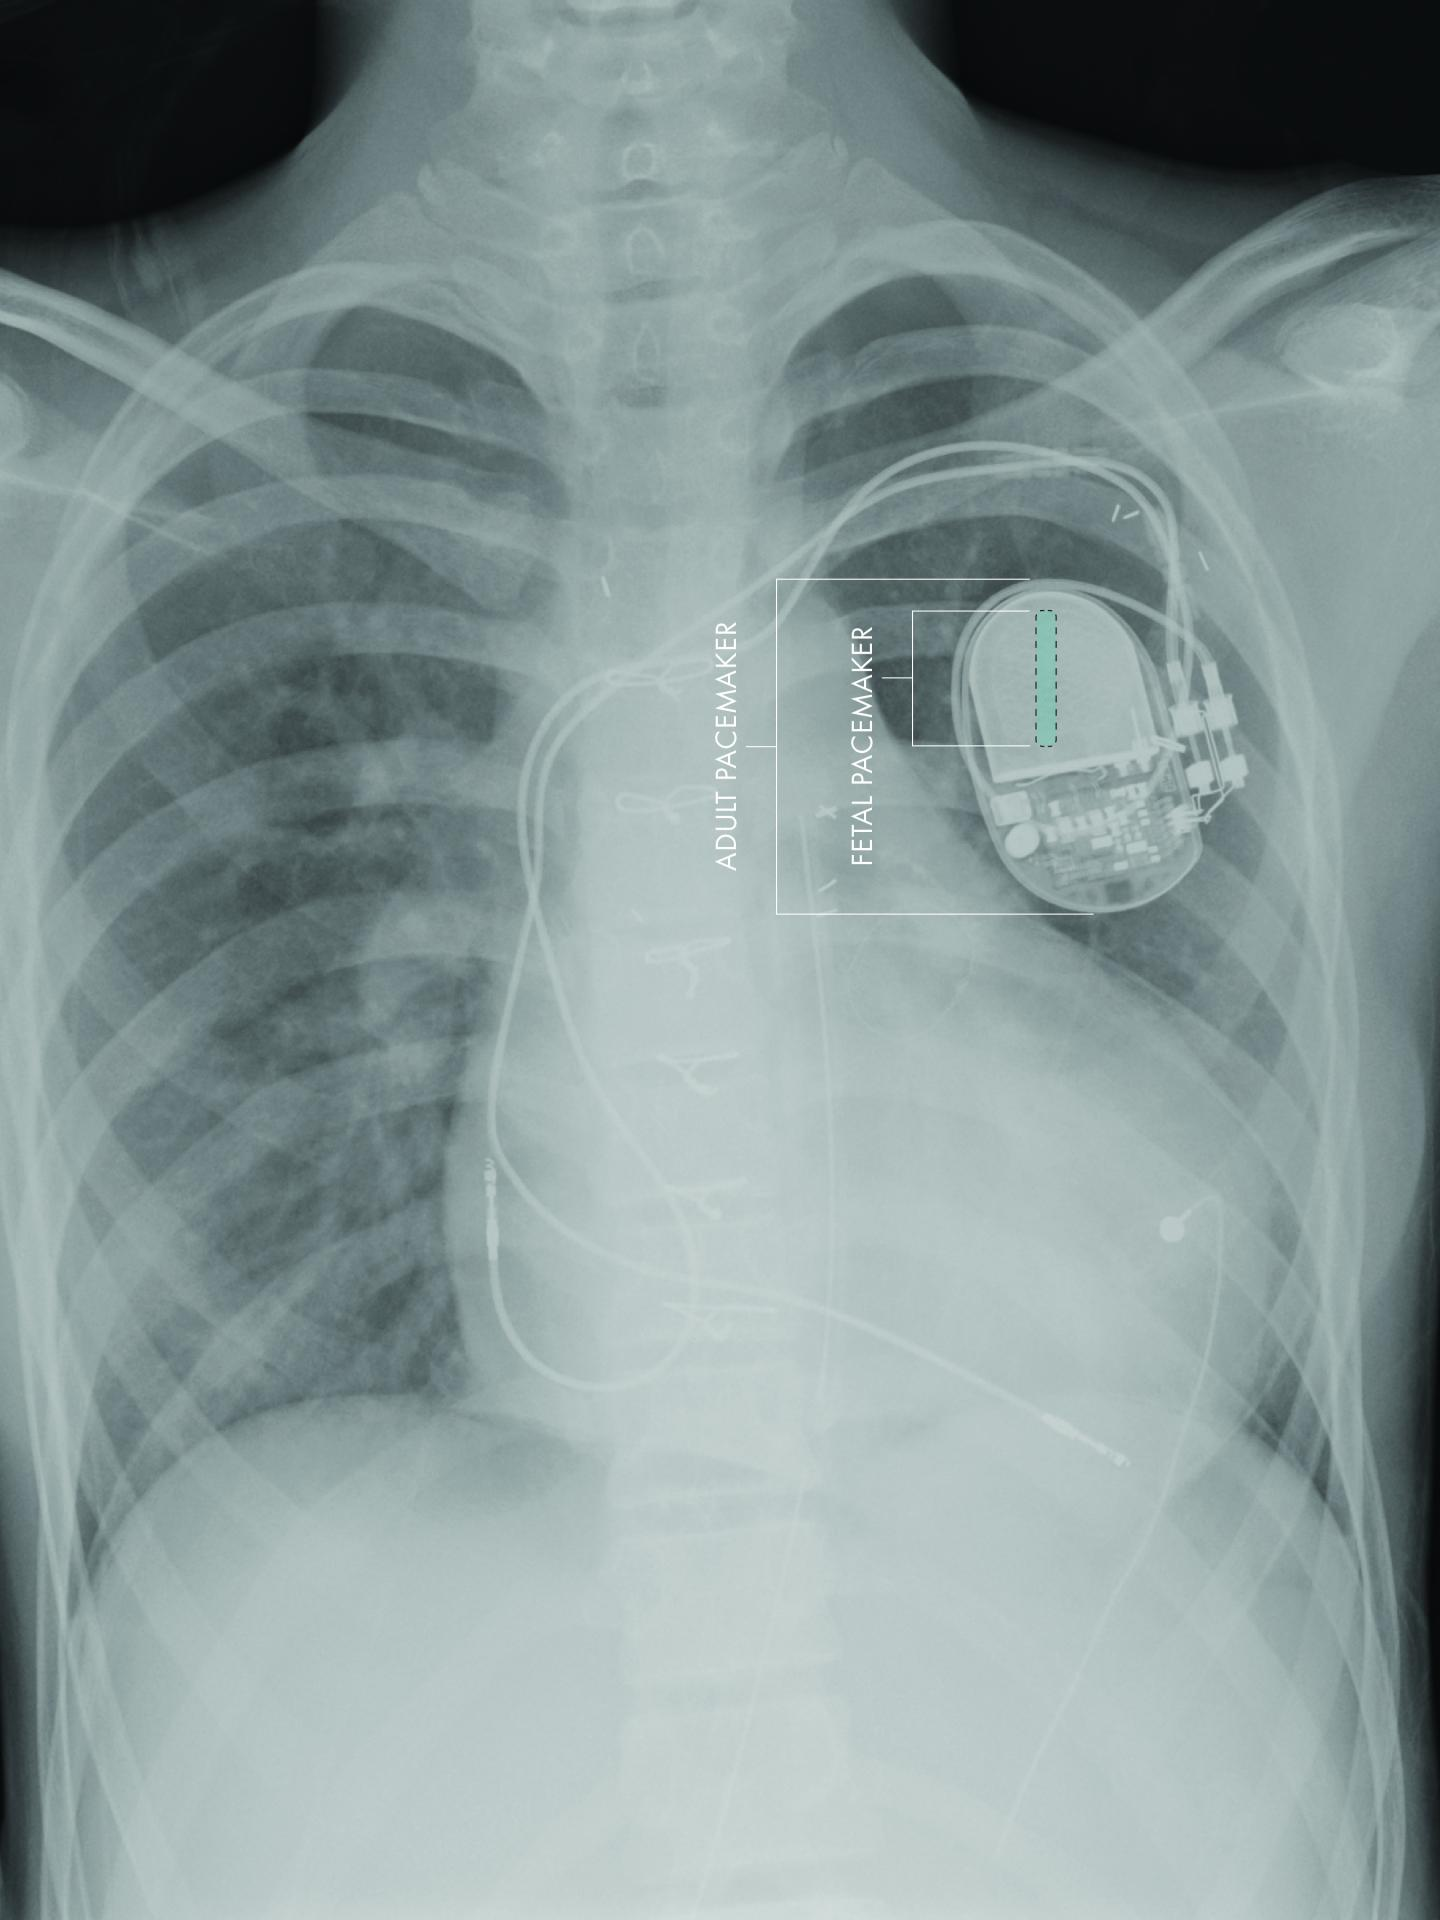 First fully-implantable micropacemaker designed for fetal use